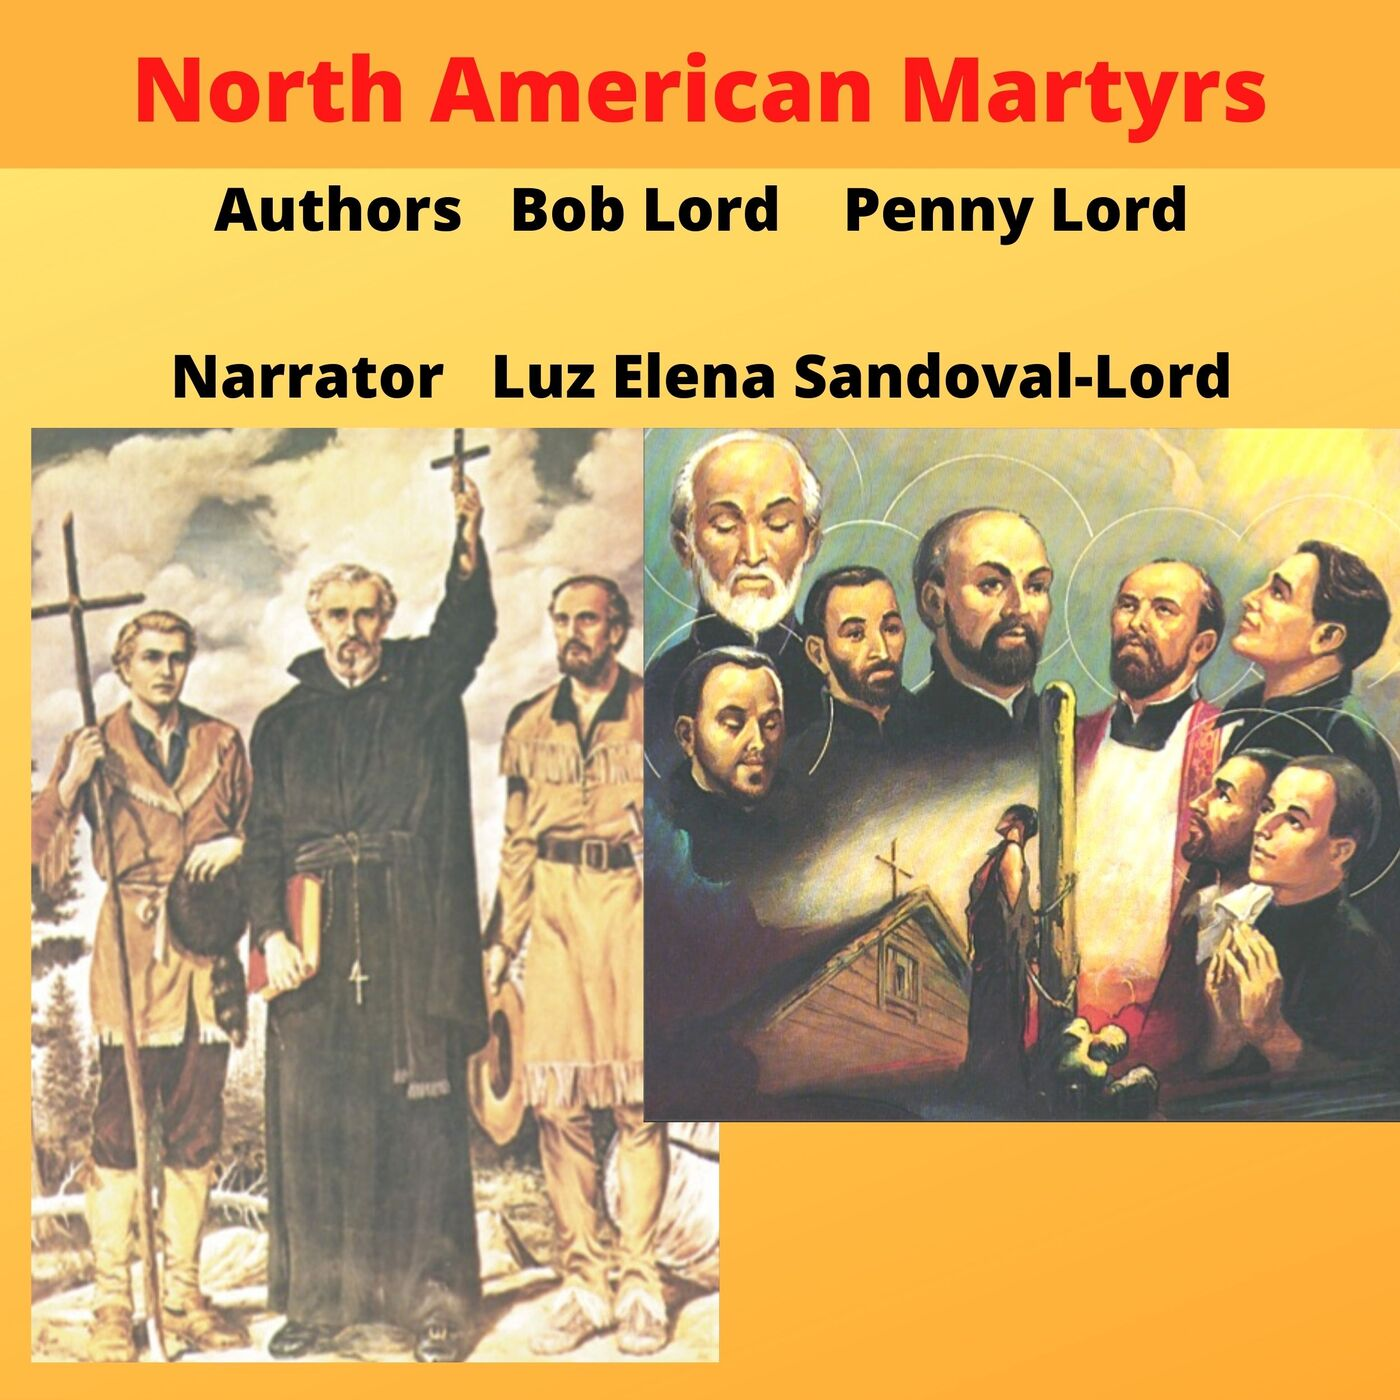 The North American Martyrs - Feast day October 19